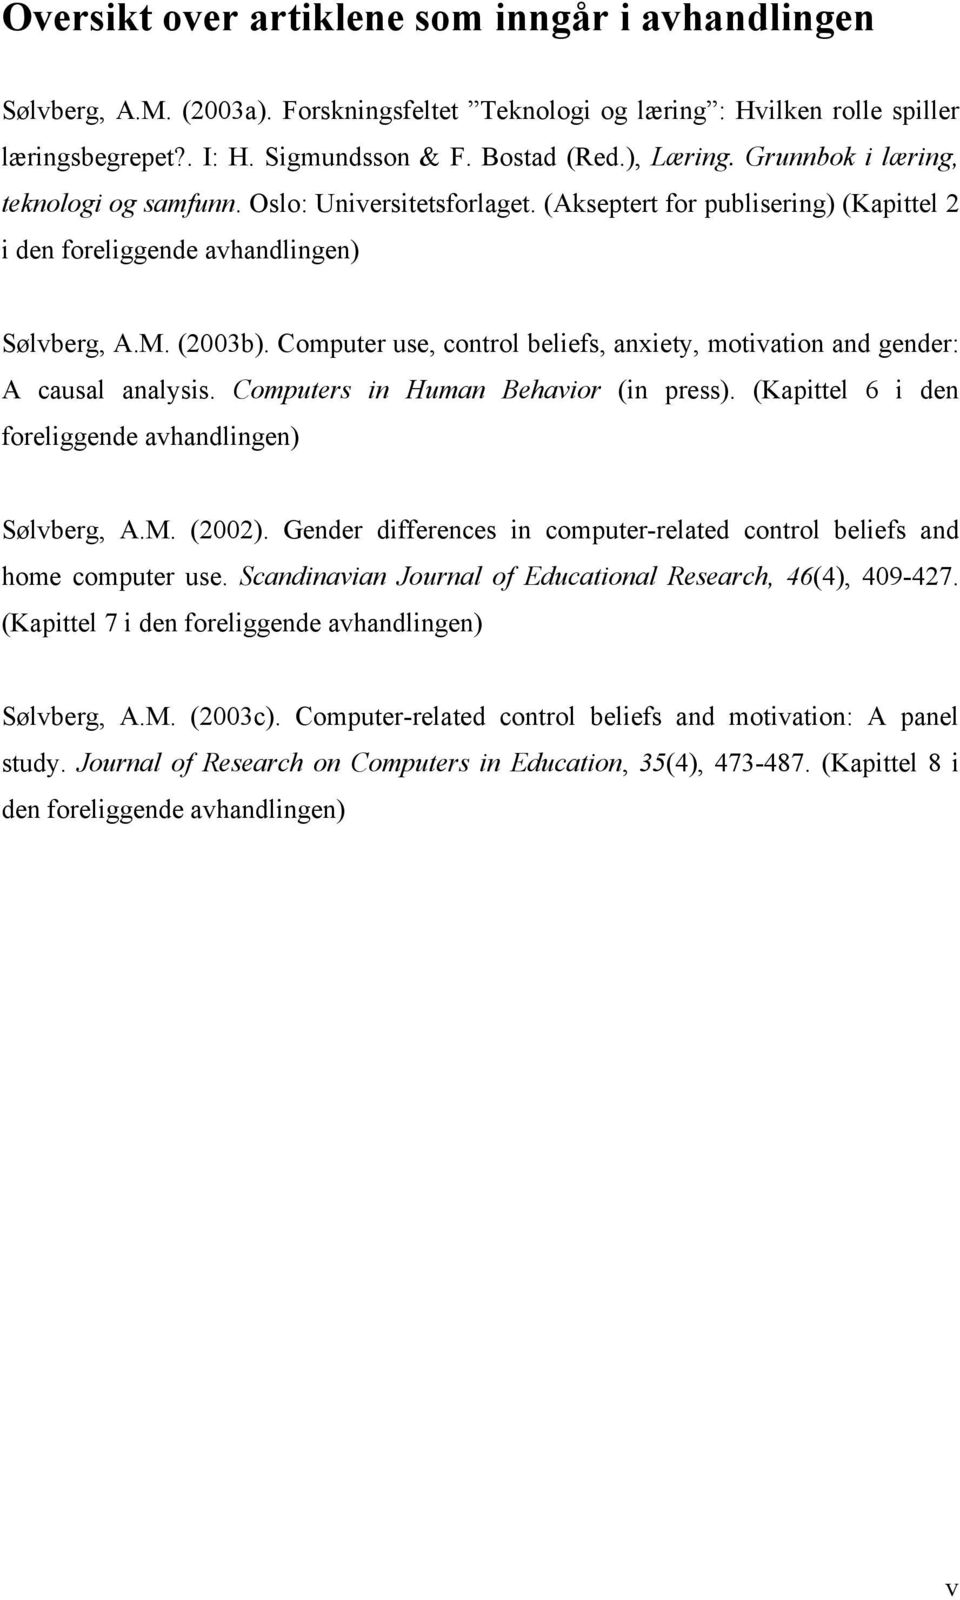 Computer use, control beliefs, anxiety, motivation and gender: A causal analysis. Computers in Human Behavior (in press). (Kapittel 6 i den foreliggende avhandlingen) Sølvberg, A.M. (2002).